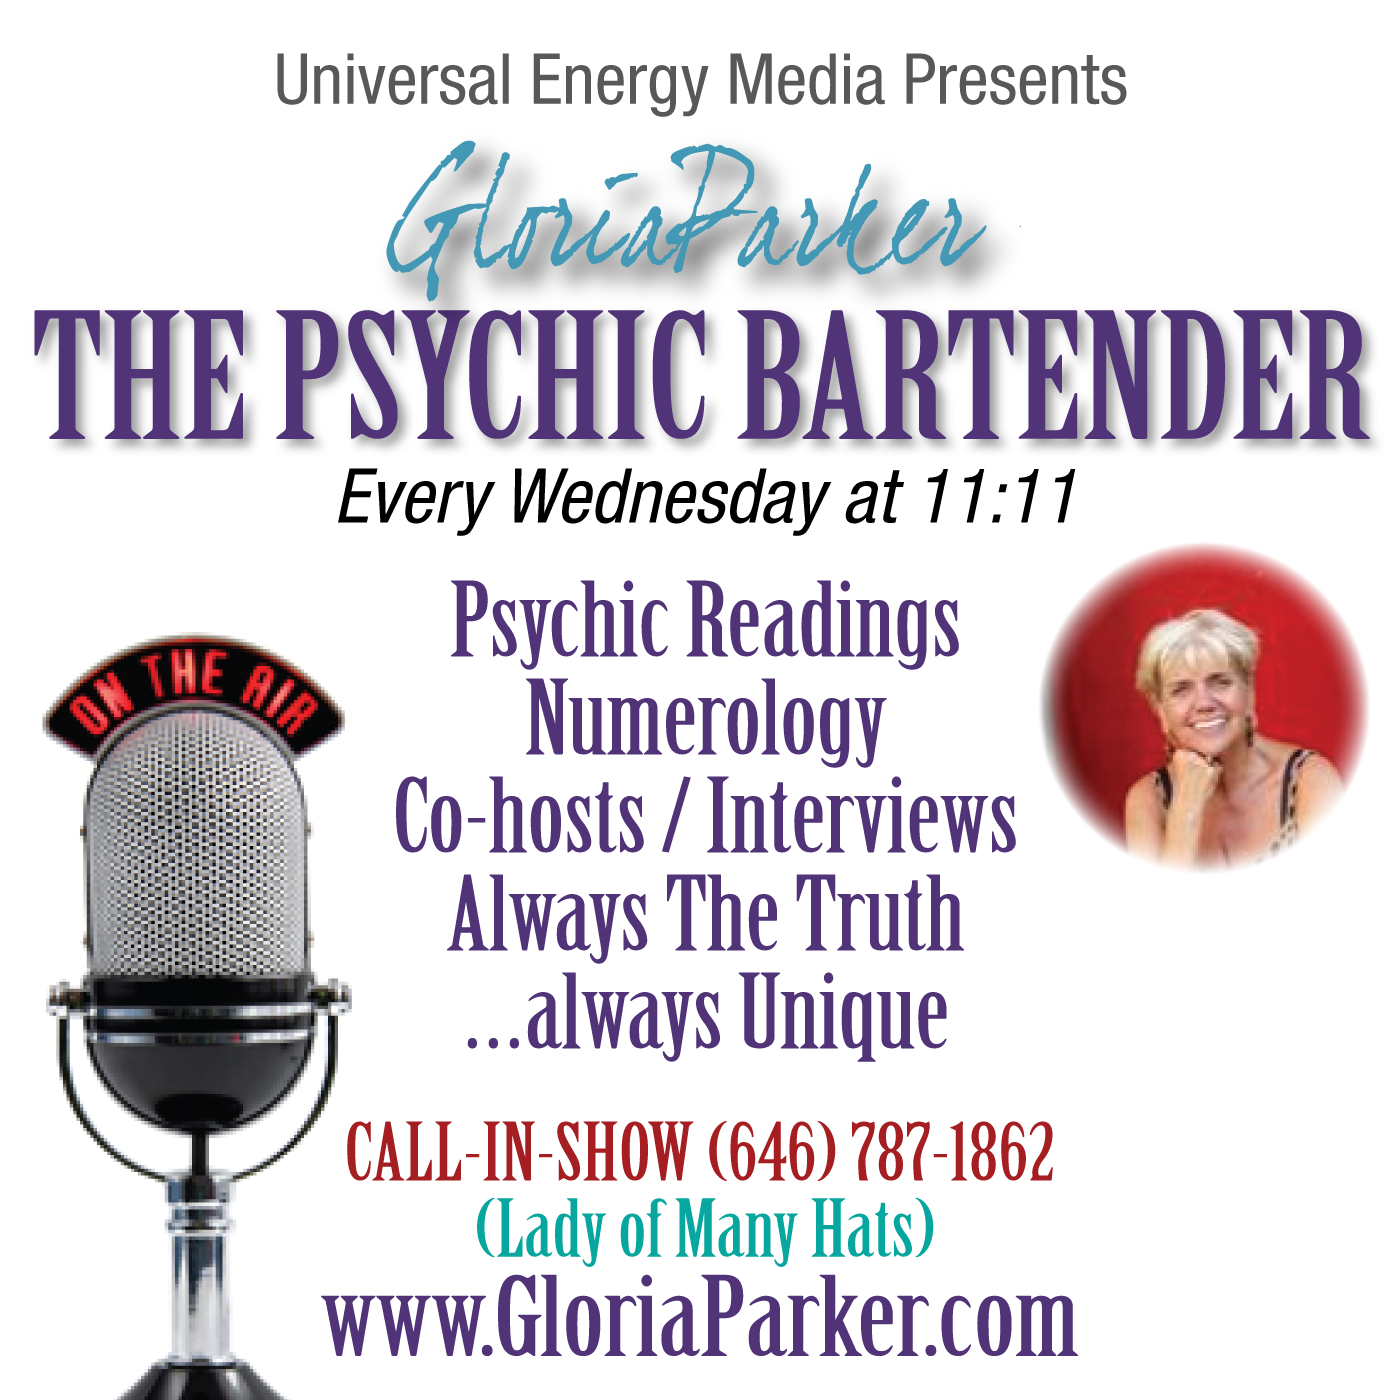 Starting in August, The Psychic Bartender Show